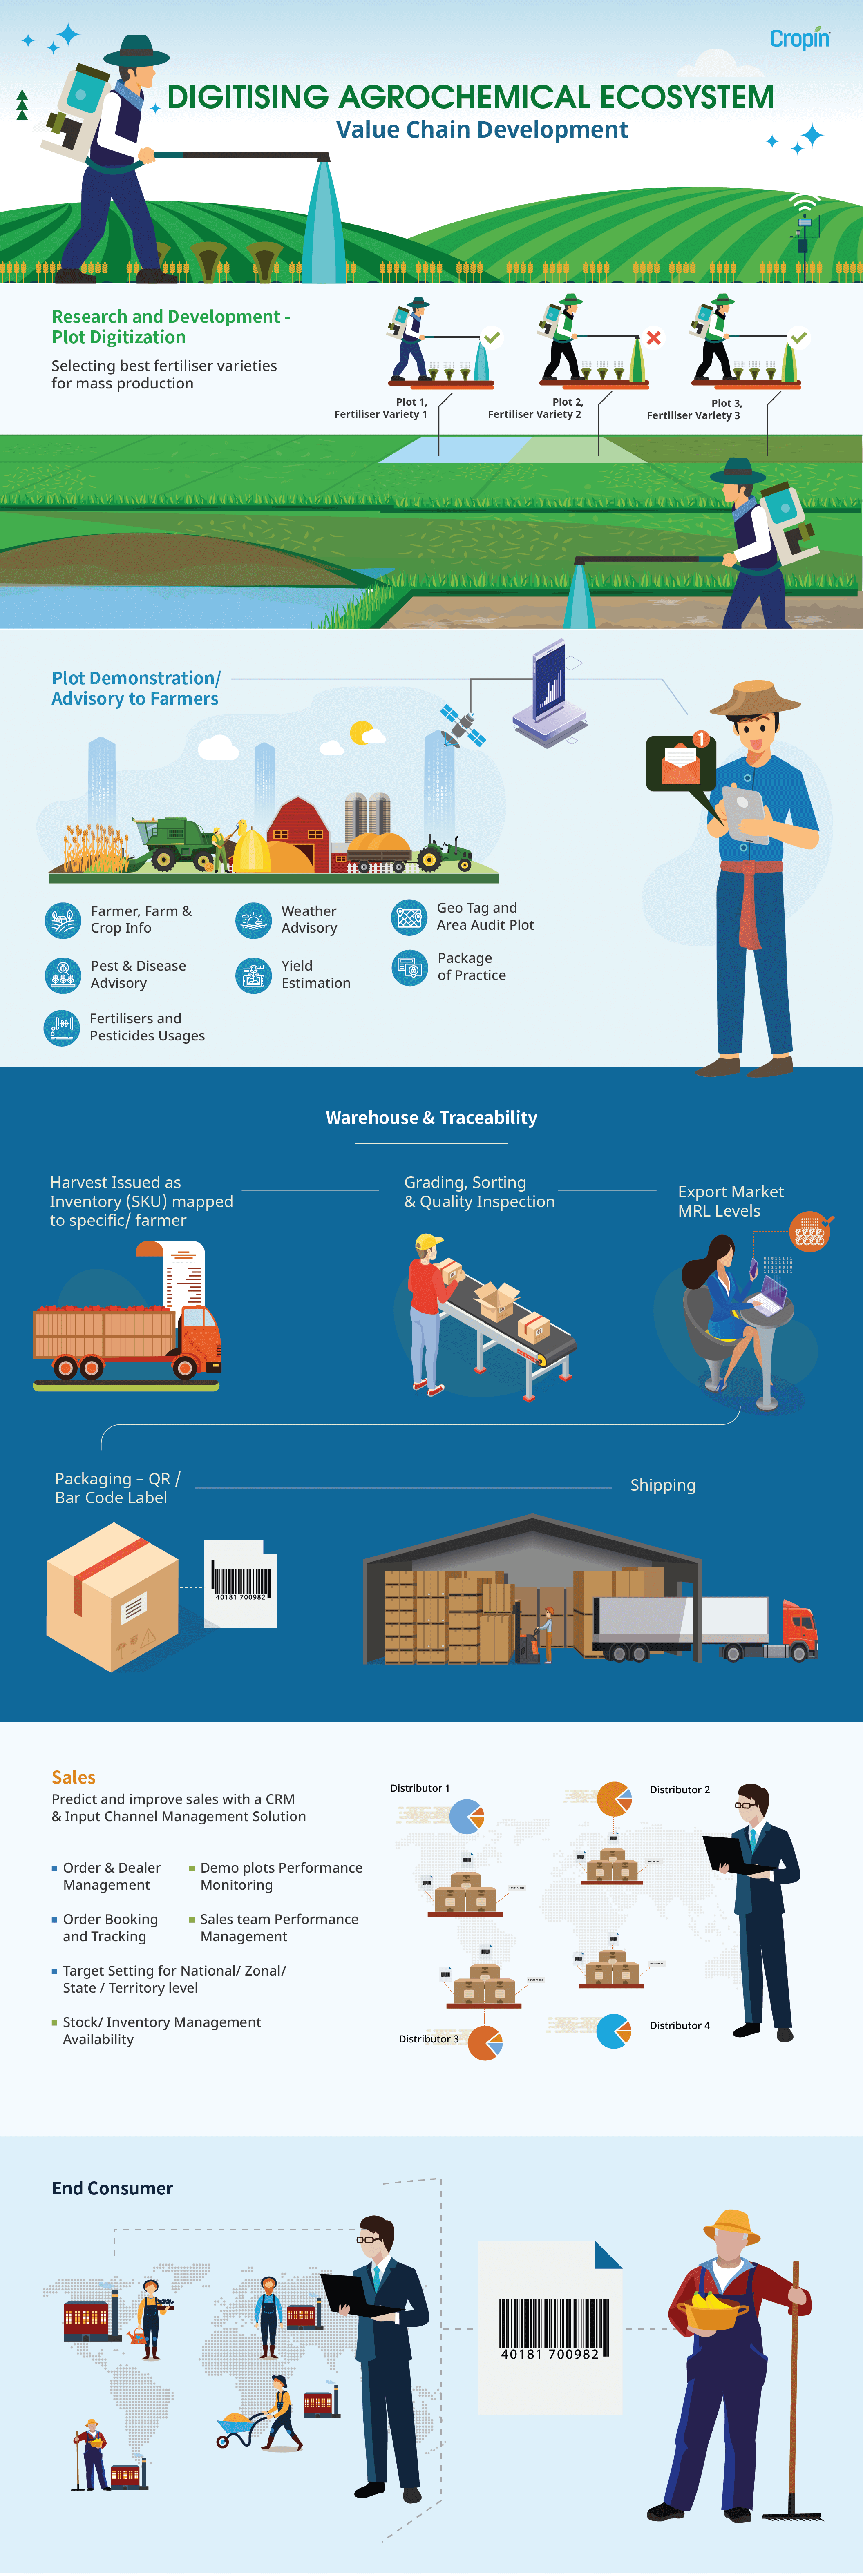 "Infographic: ""Digitising the agrochemical ecosystem"""